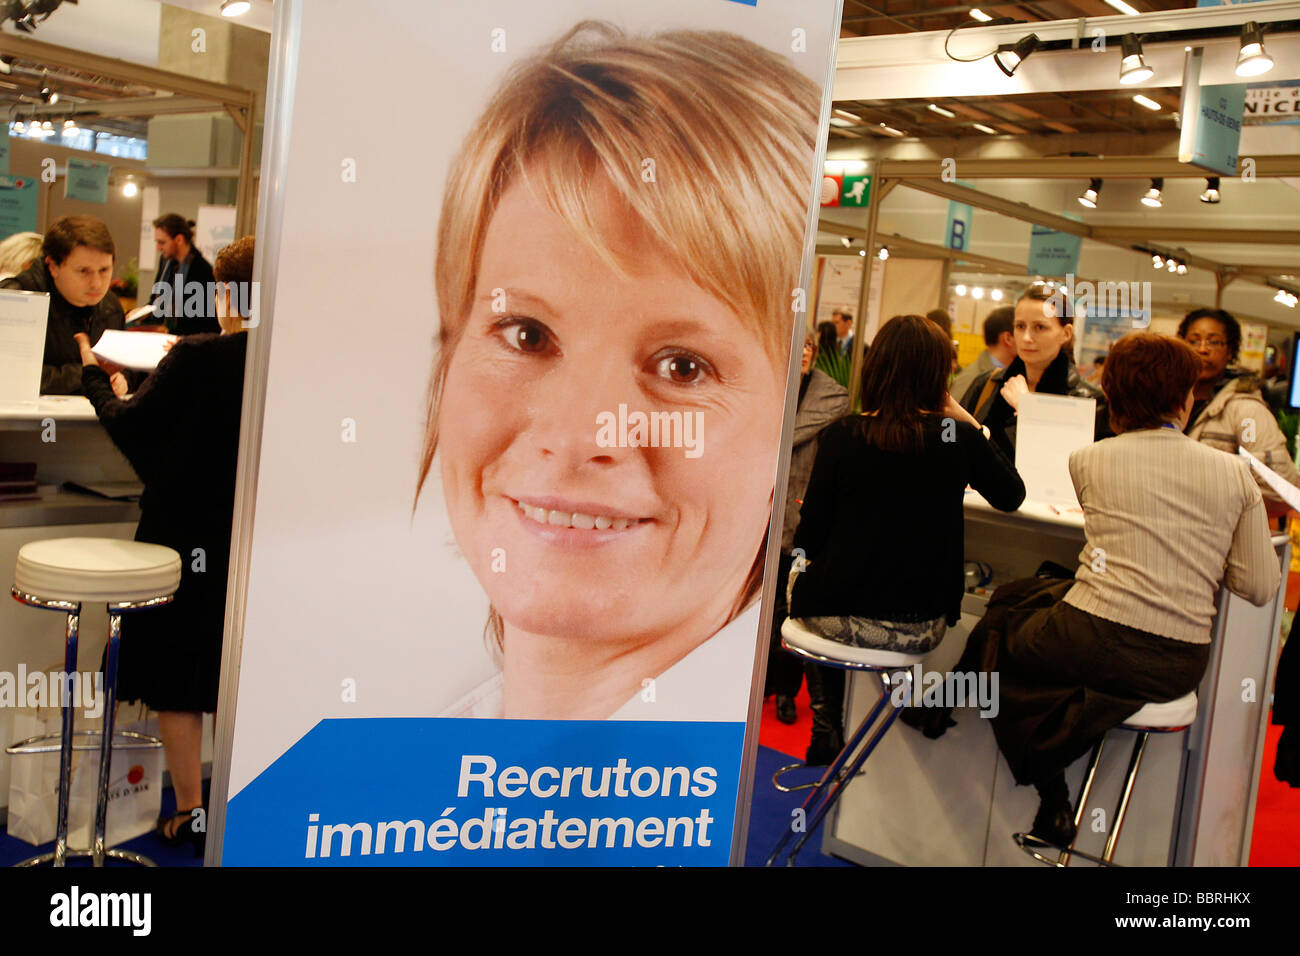 INTERVIEWS, APPLICATIONS, RESUMES, PUBLIC EMPLOYMENT FAIR, NATIONAL FAIR FOR RECRUITMENT INTO PROFESSIONS AND CAREERS Stock Photo